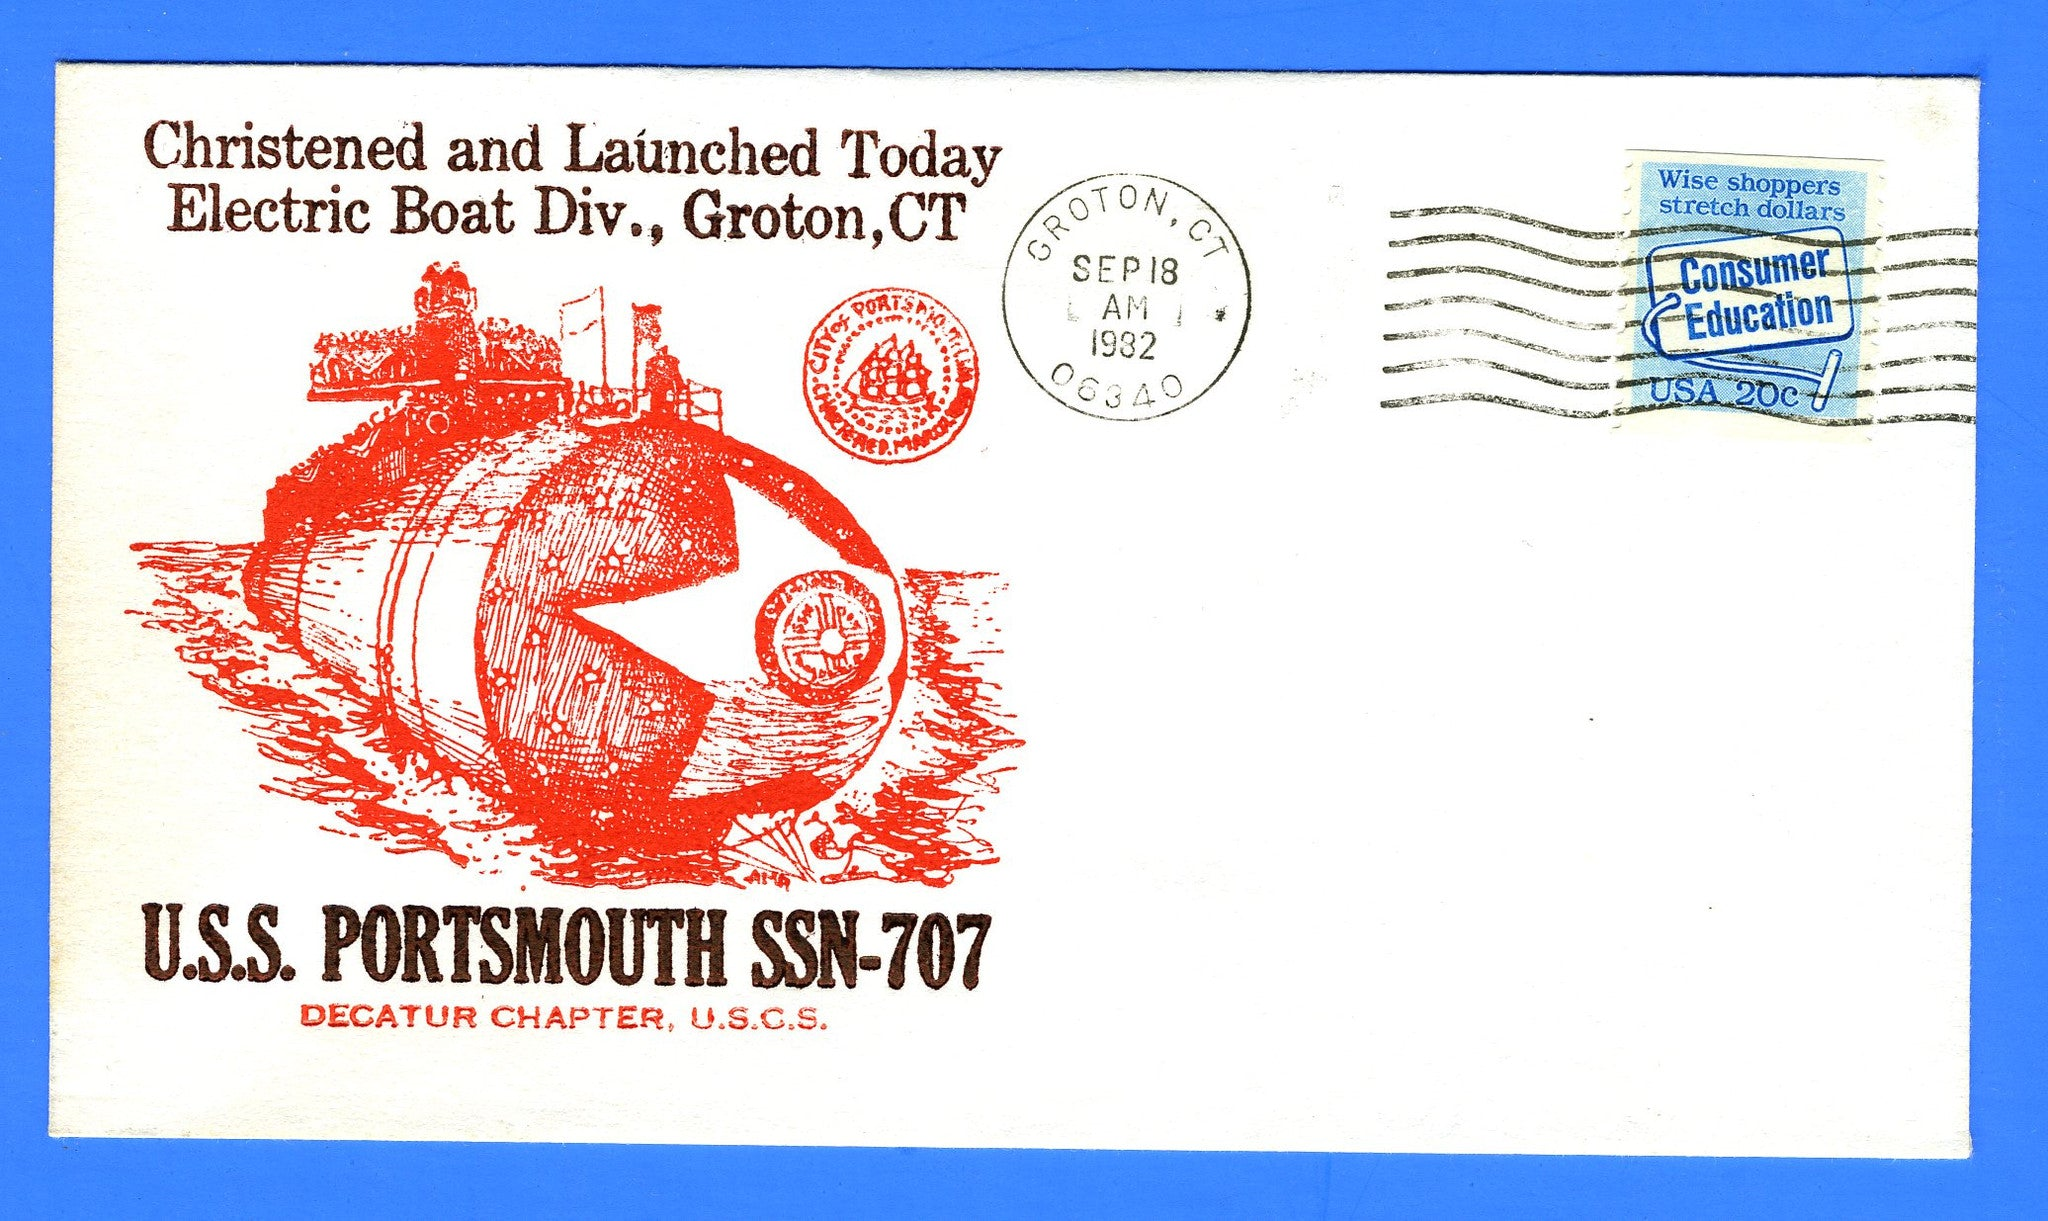 USS Portsmouth SSN-707 Christened & Launched September 18, 1982 - Cachet by USS Decatur Chapter No. 4, USCS